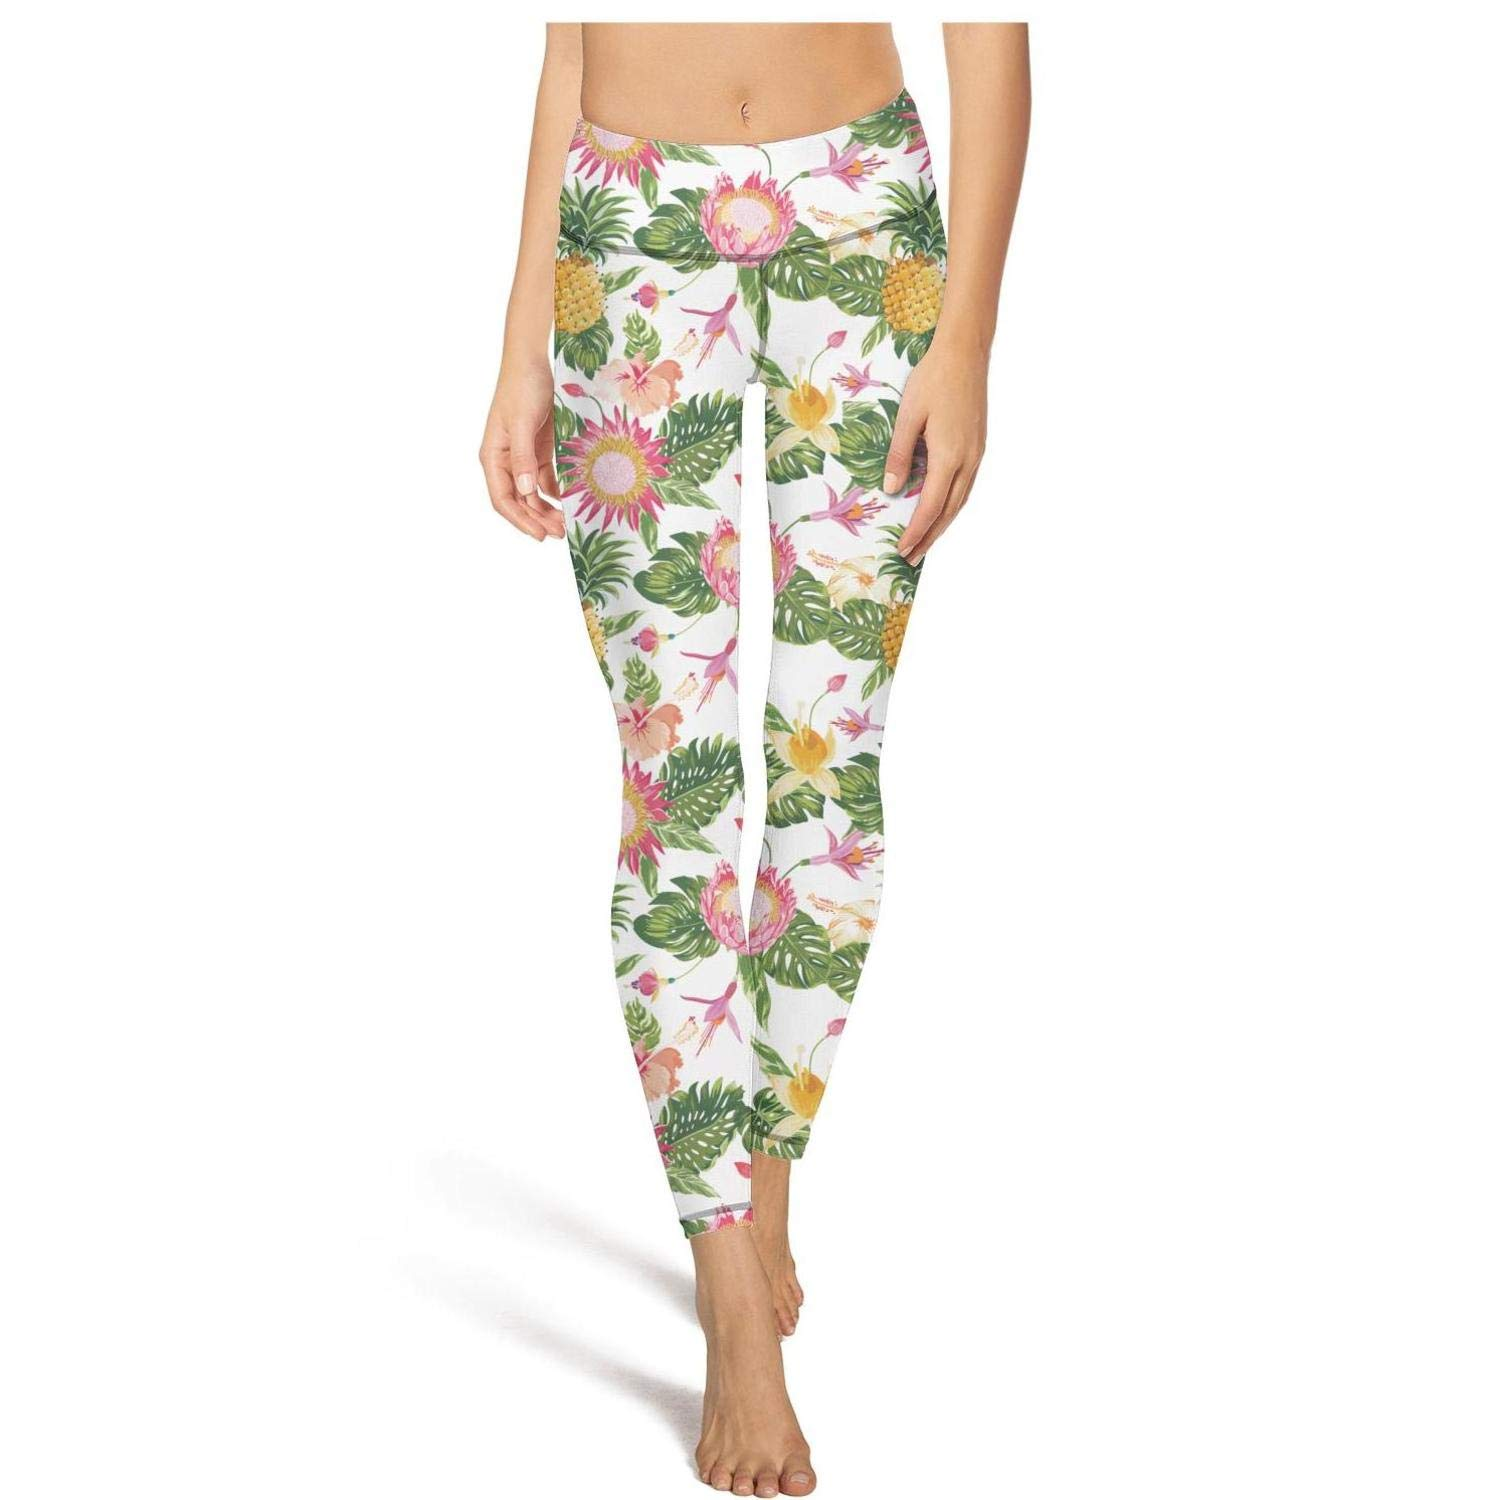 PROGIFToO Womens Workout Running Legging Watercolor Pineapple Tummy Control Yoga Pants Stretch